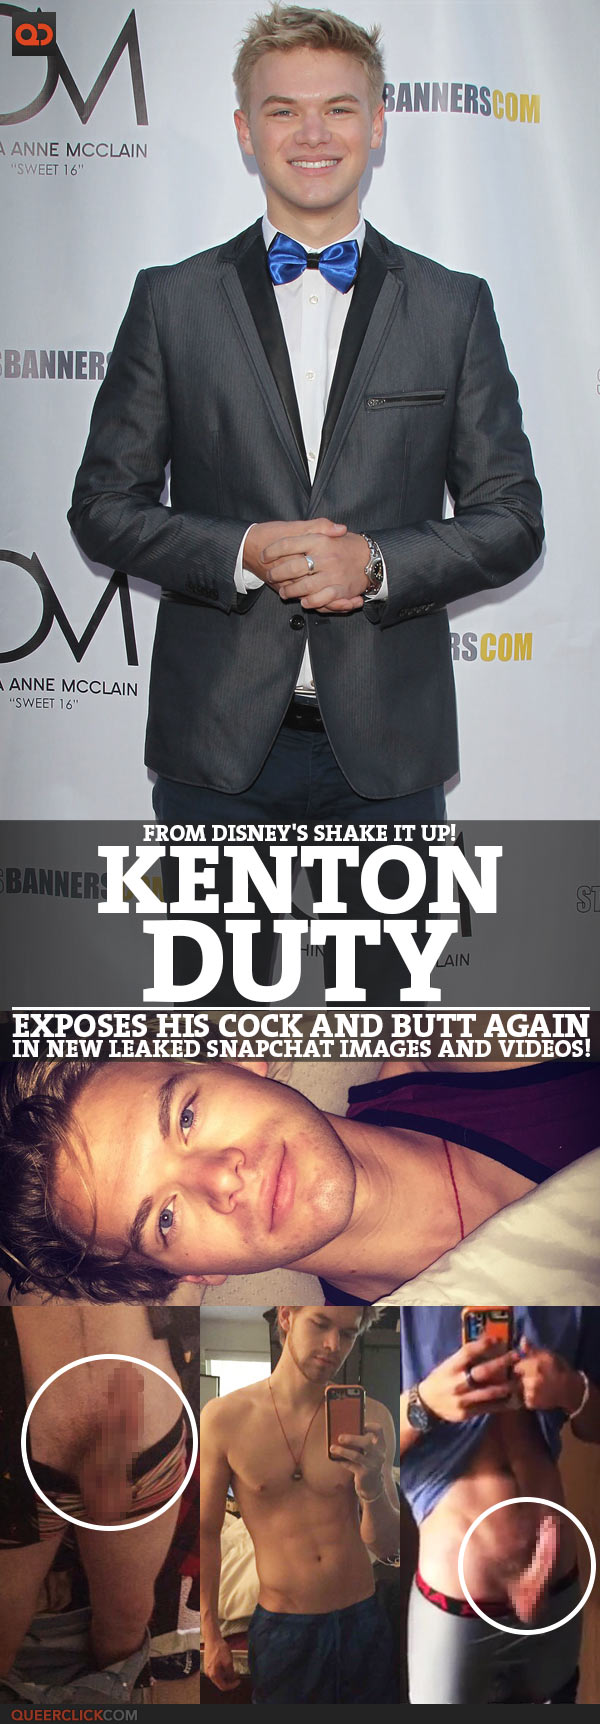 Kenton Duty Exposes His Cock And Butt Again In New Leaked Snapchat Images And Videos!!